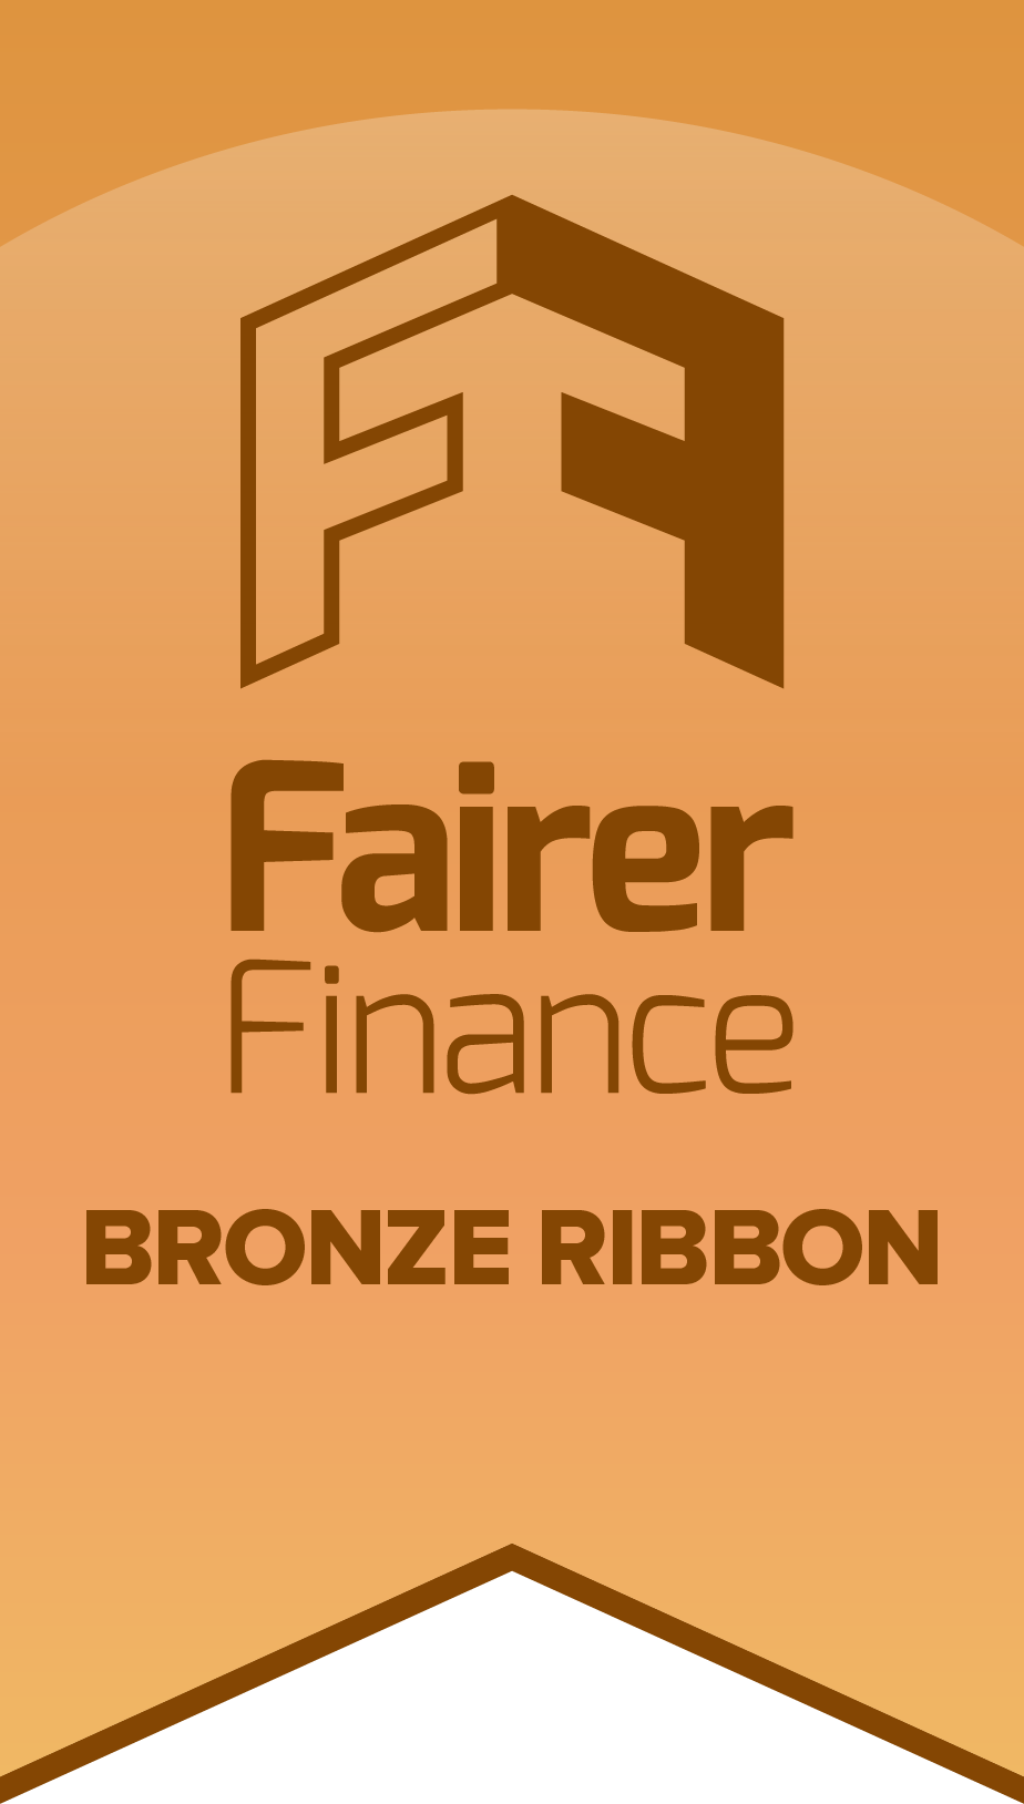 Bronze ribbon